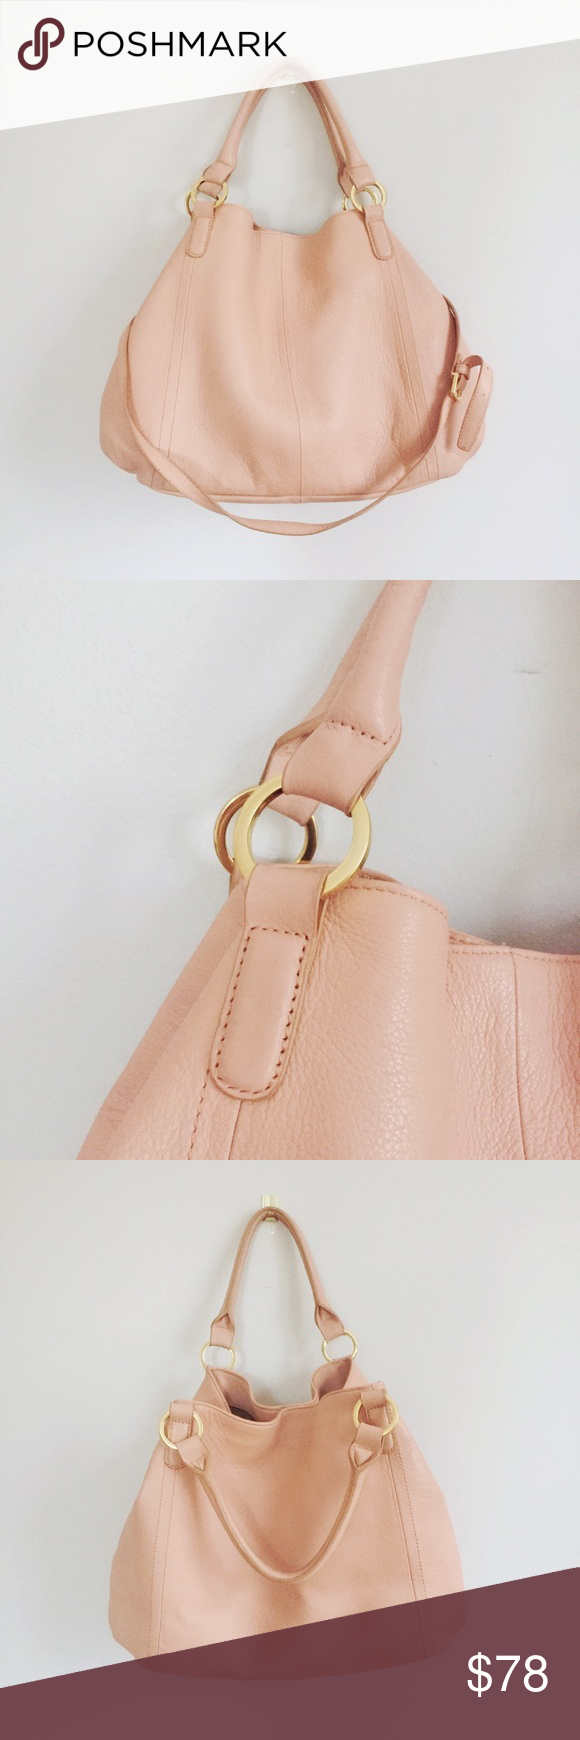 697b2178db Pink Leather Oversized Hobo Tote Crossbody Bag Fabulous pink bag - great  carryall for spring!